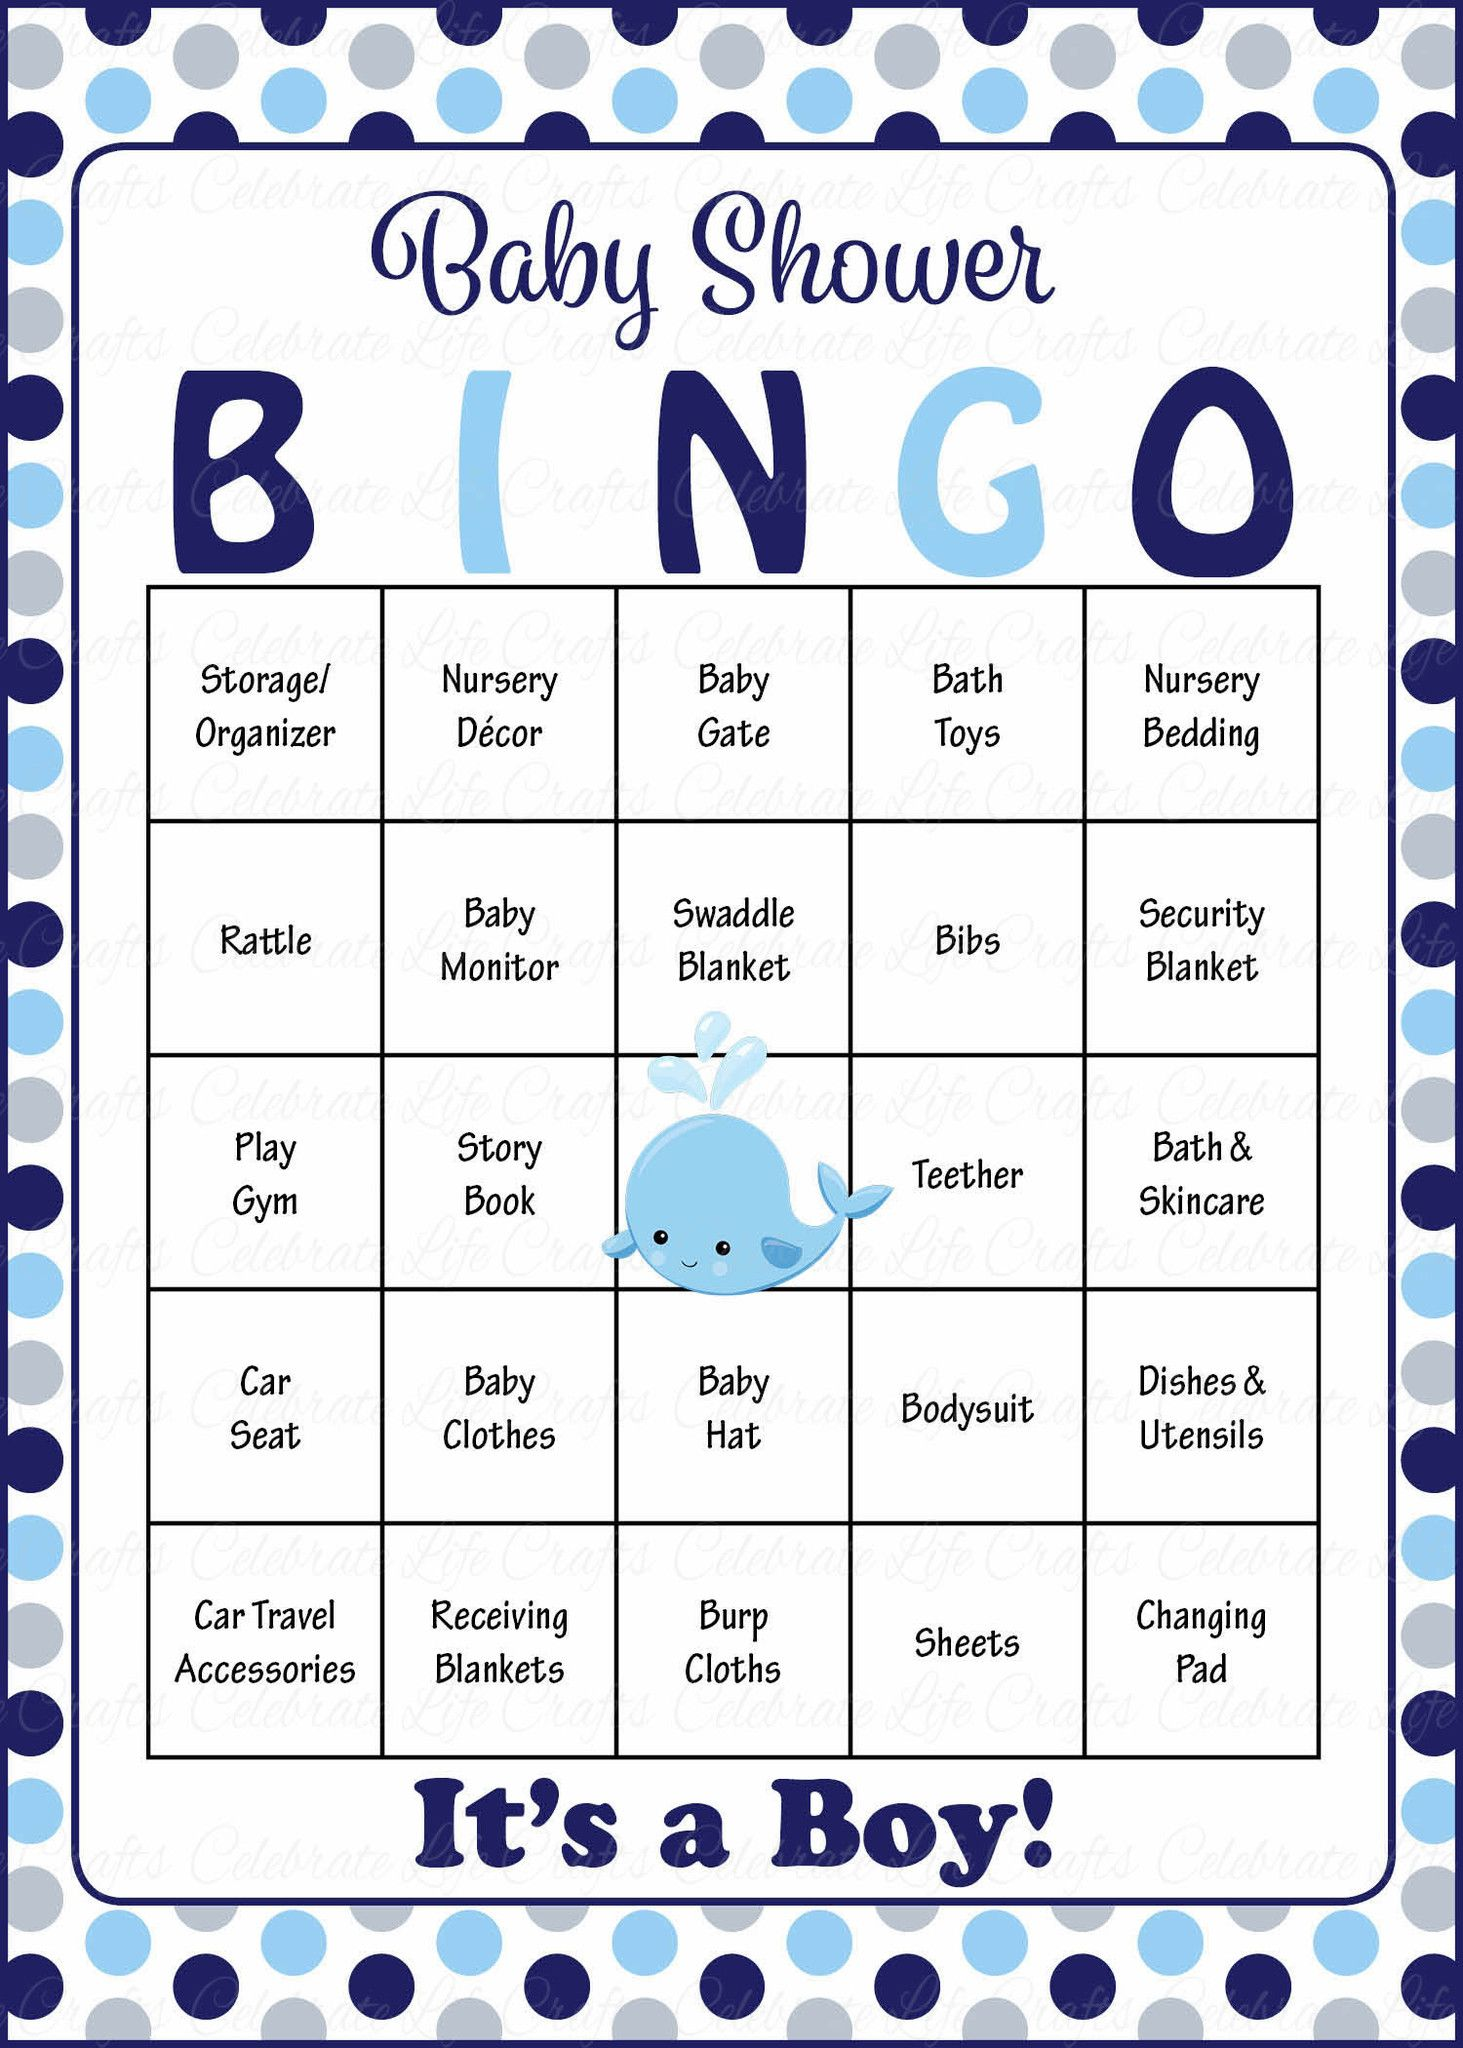 Whale Baby Bingo Cards   Printable Download   Prefilled   Baby Shower Game  For Boy